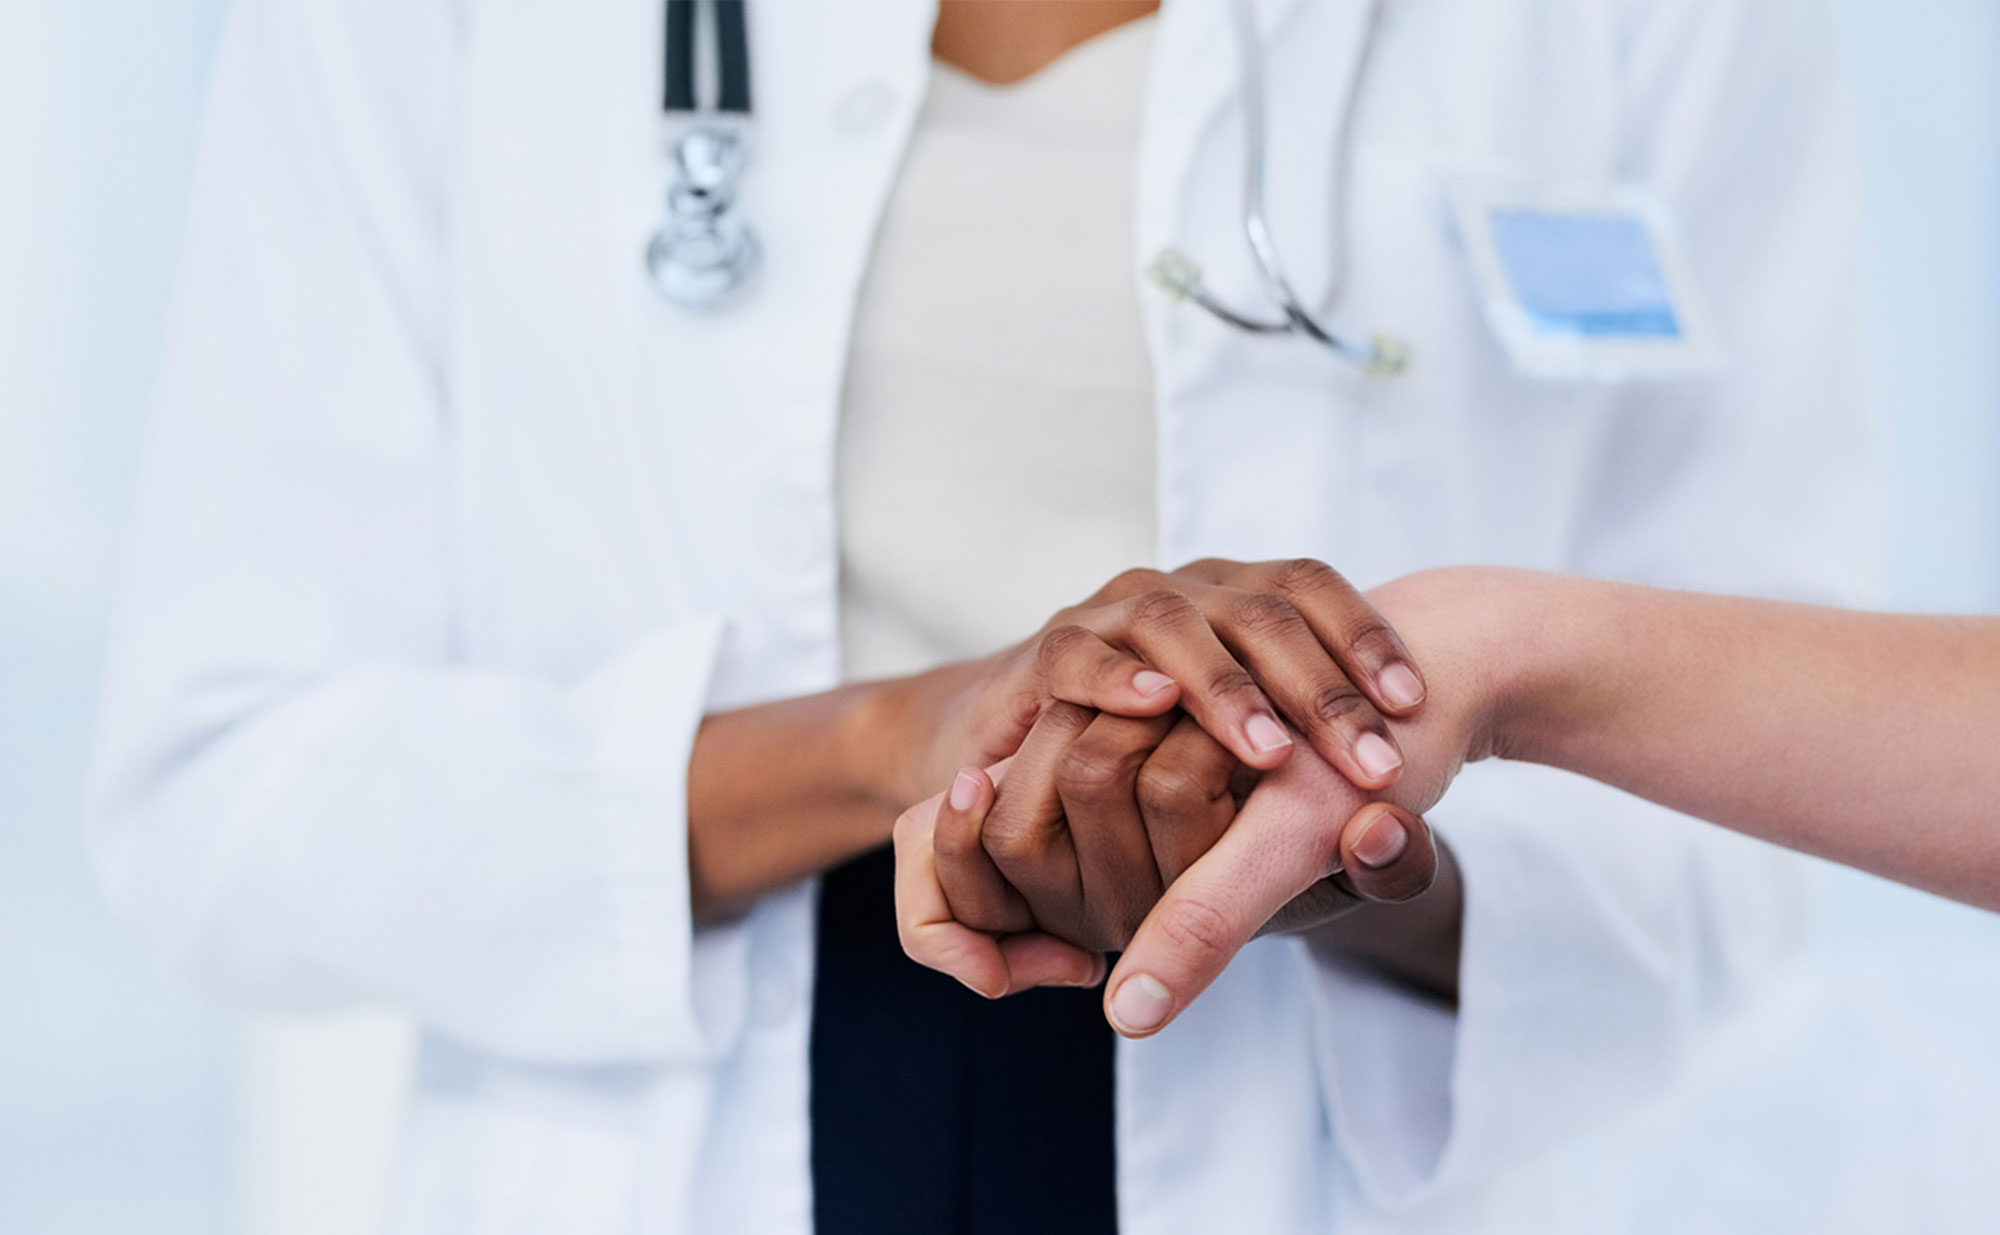 A medical professional holding onto a patient's hand.